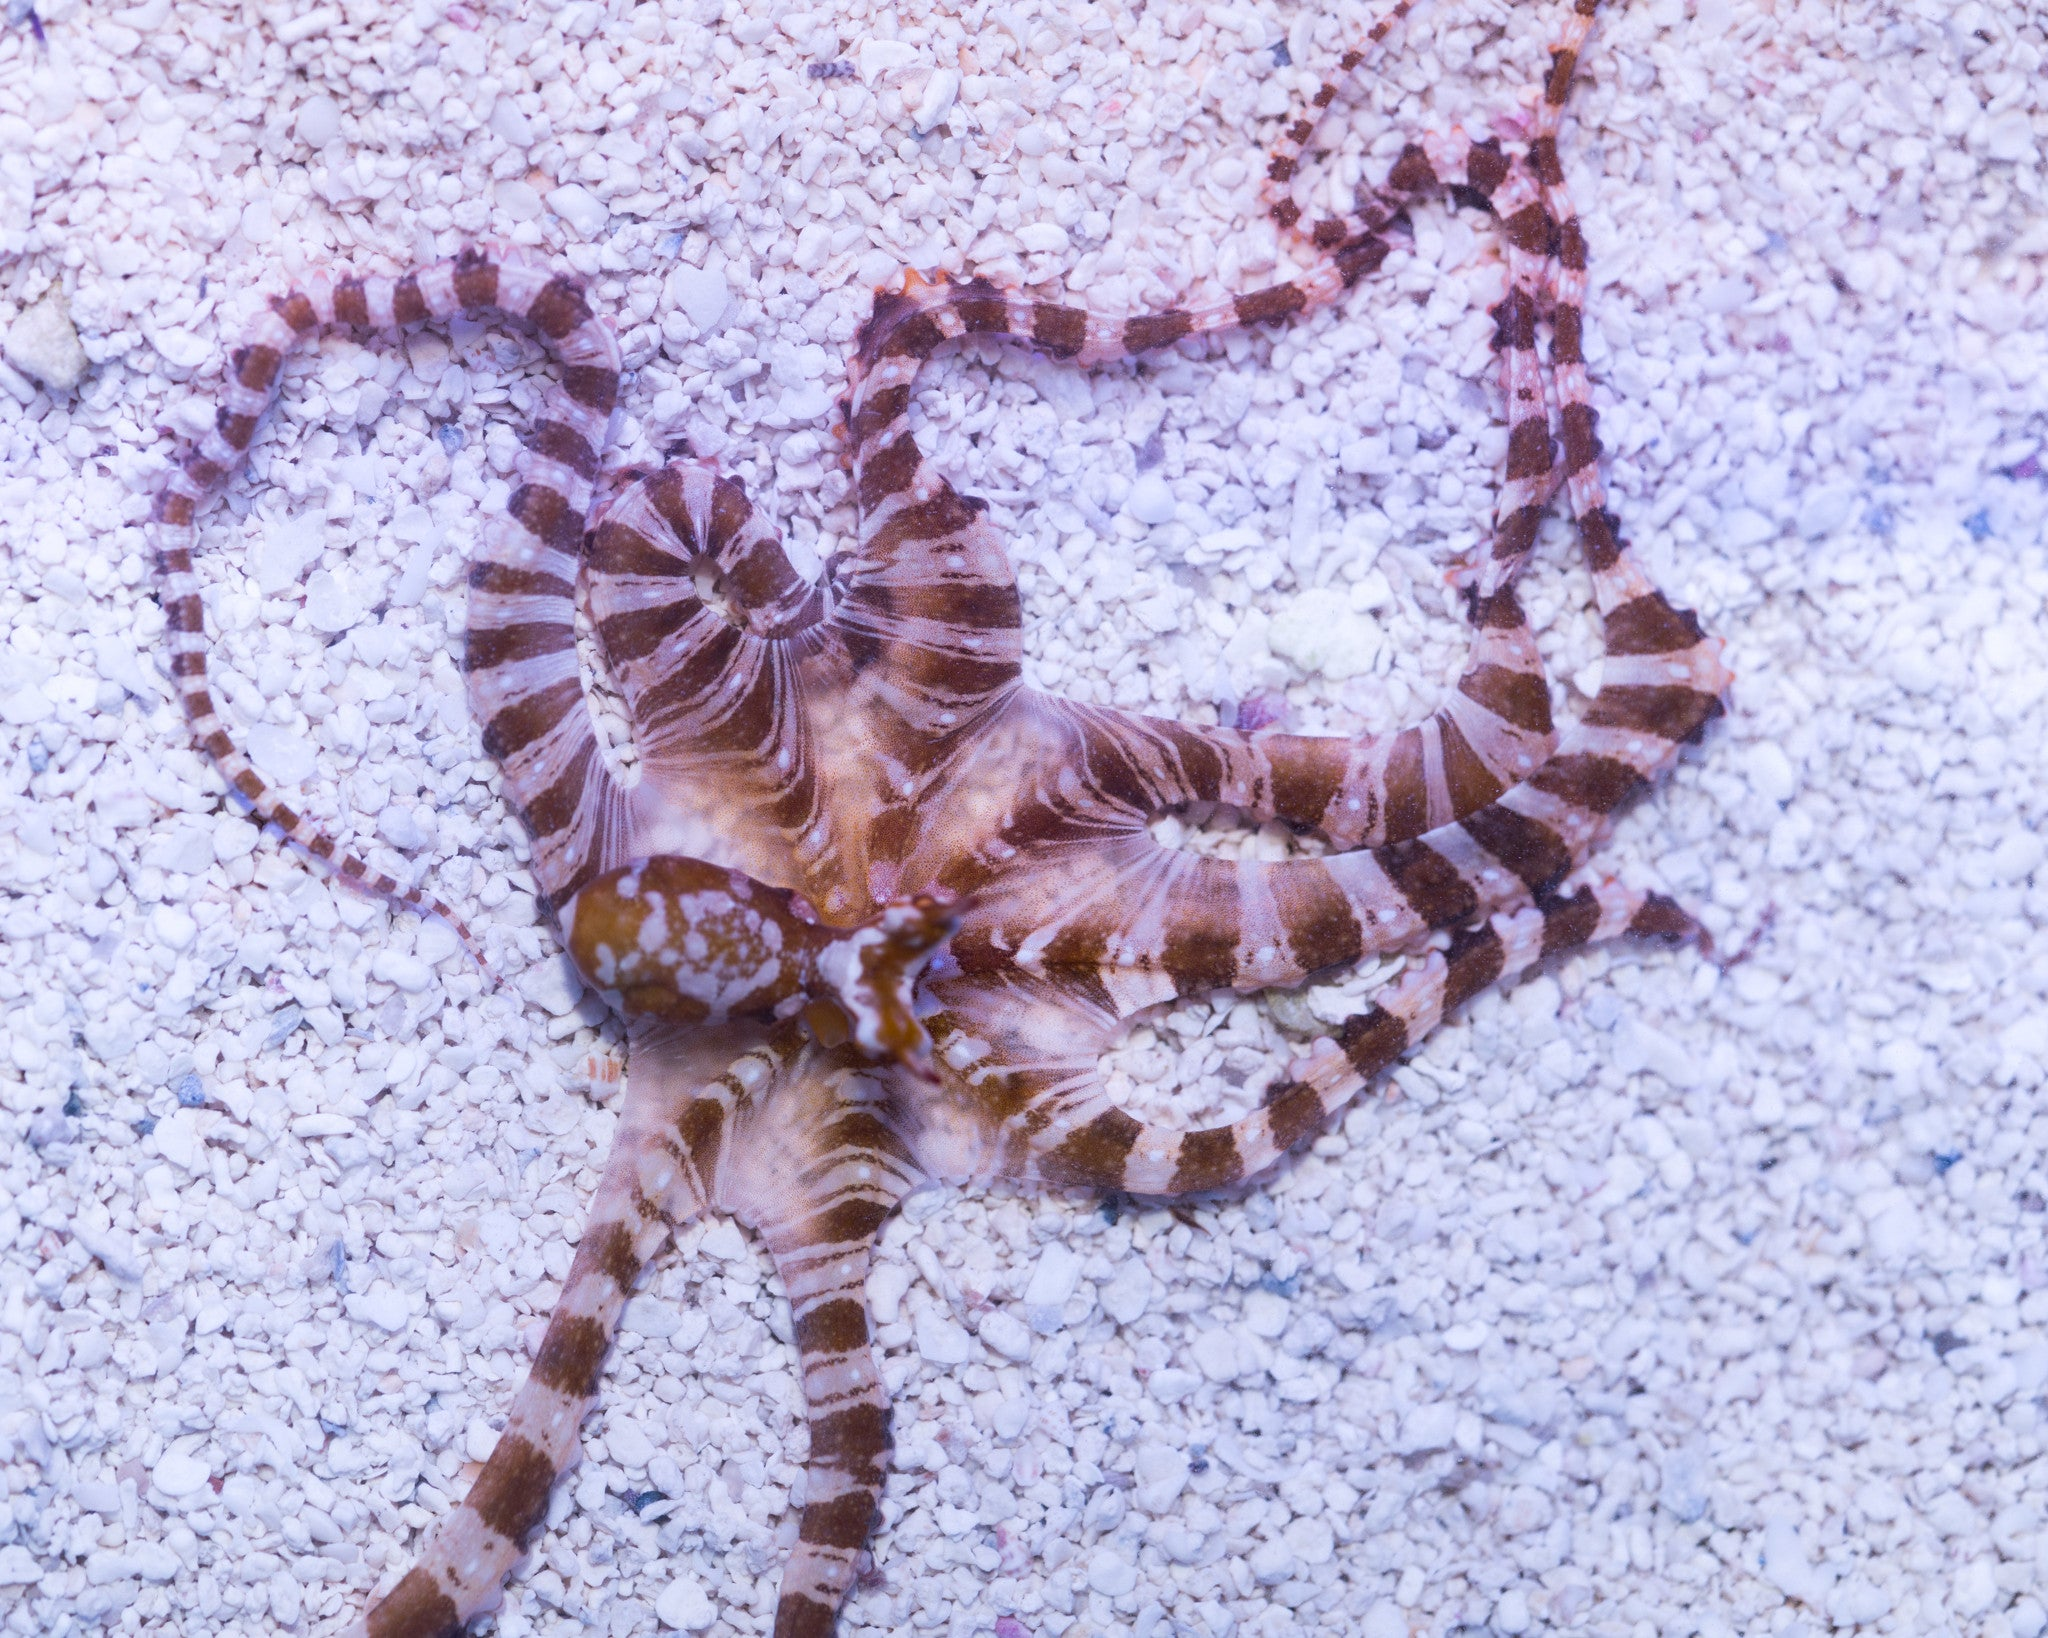 Wunderpus Mimic Octopus F